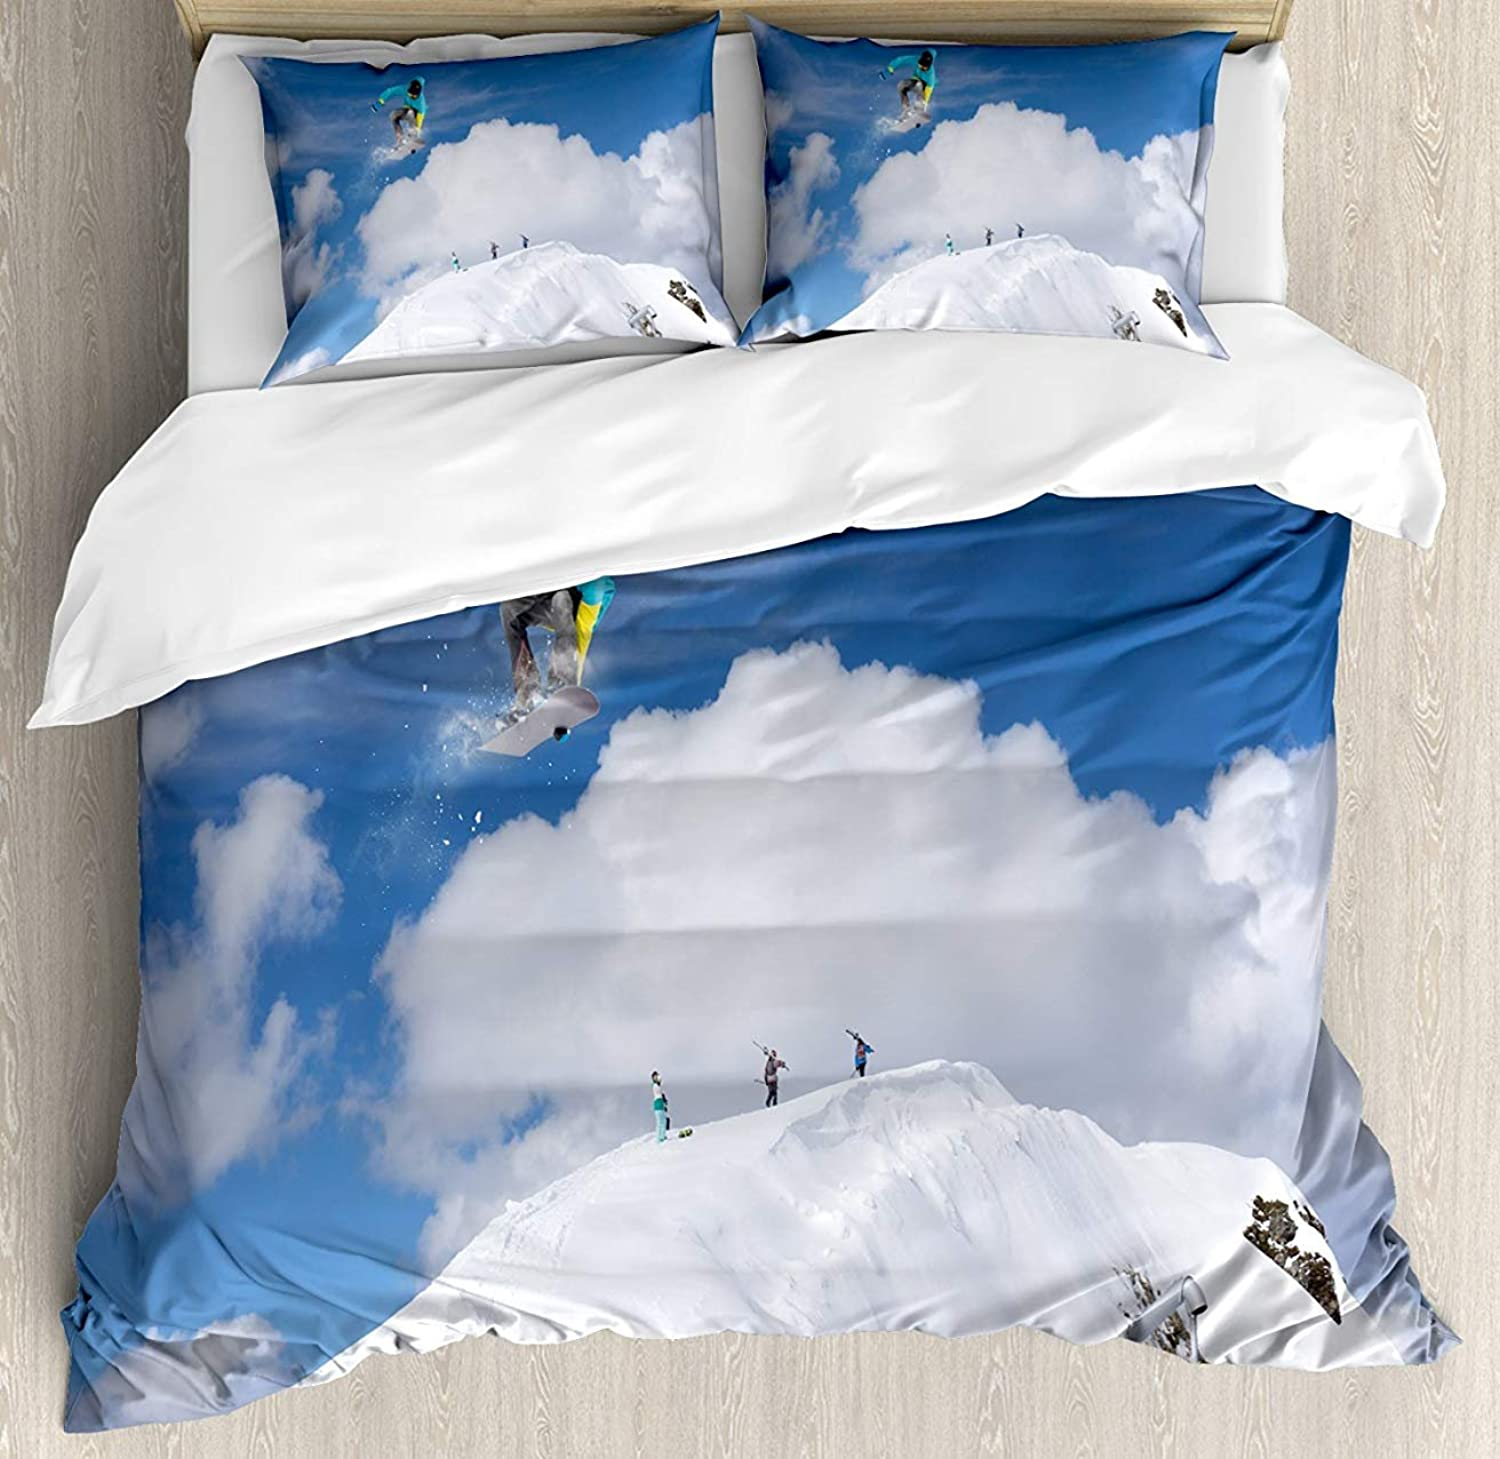 Winter Bet Set 4pcs Bedding Sets Duvet Cover Flat Sheet with Decorative Pillow Cases King Size for Kids Adults TeensFlying Snowboarder on The Mountaintop with Cloudy Sky Extreme Sports Theme Photo